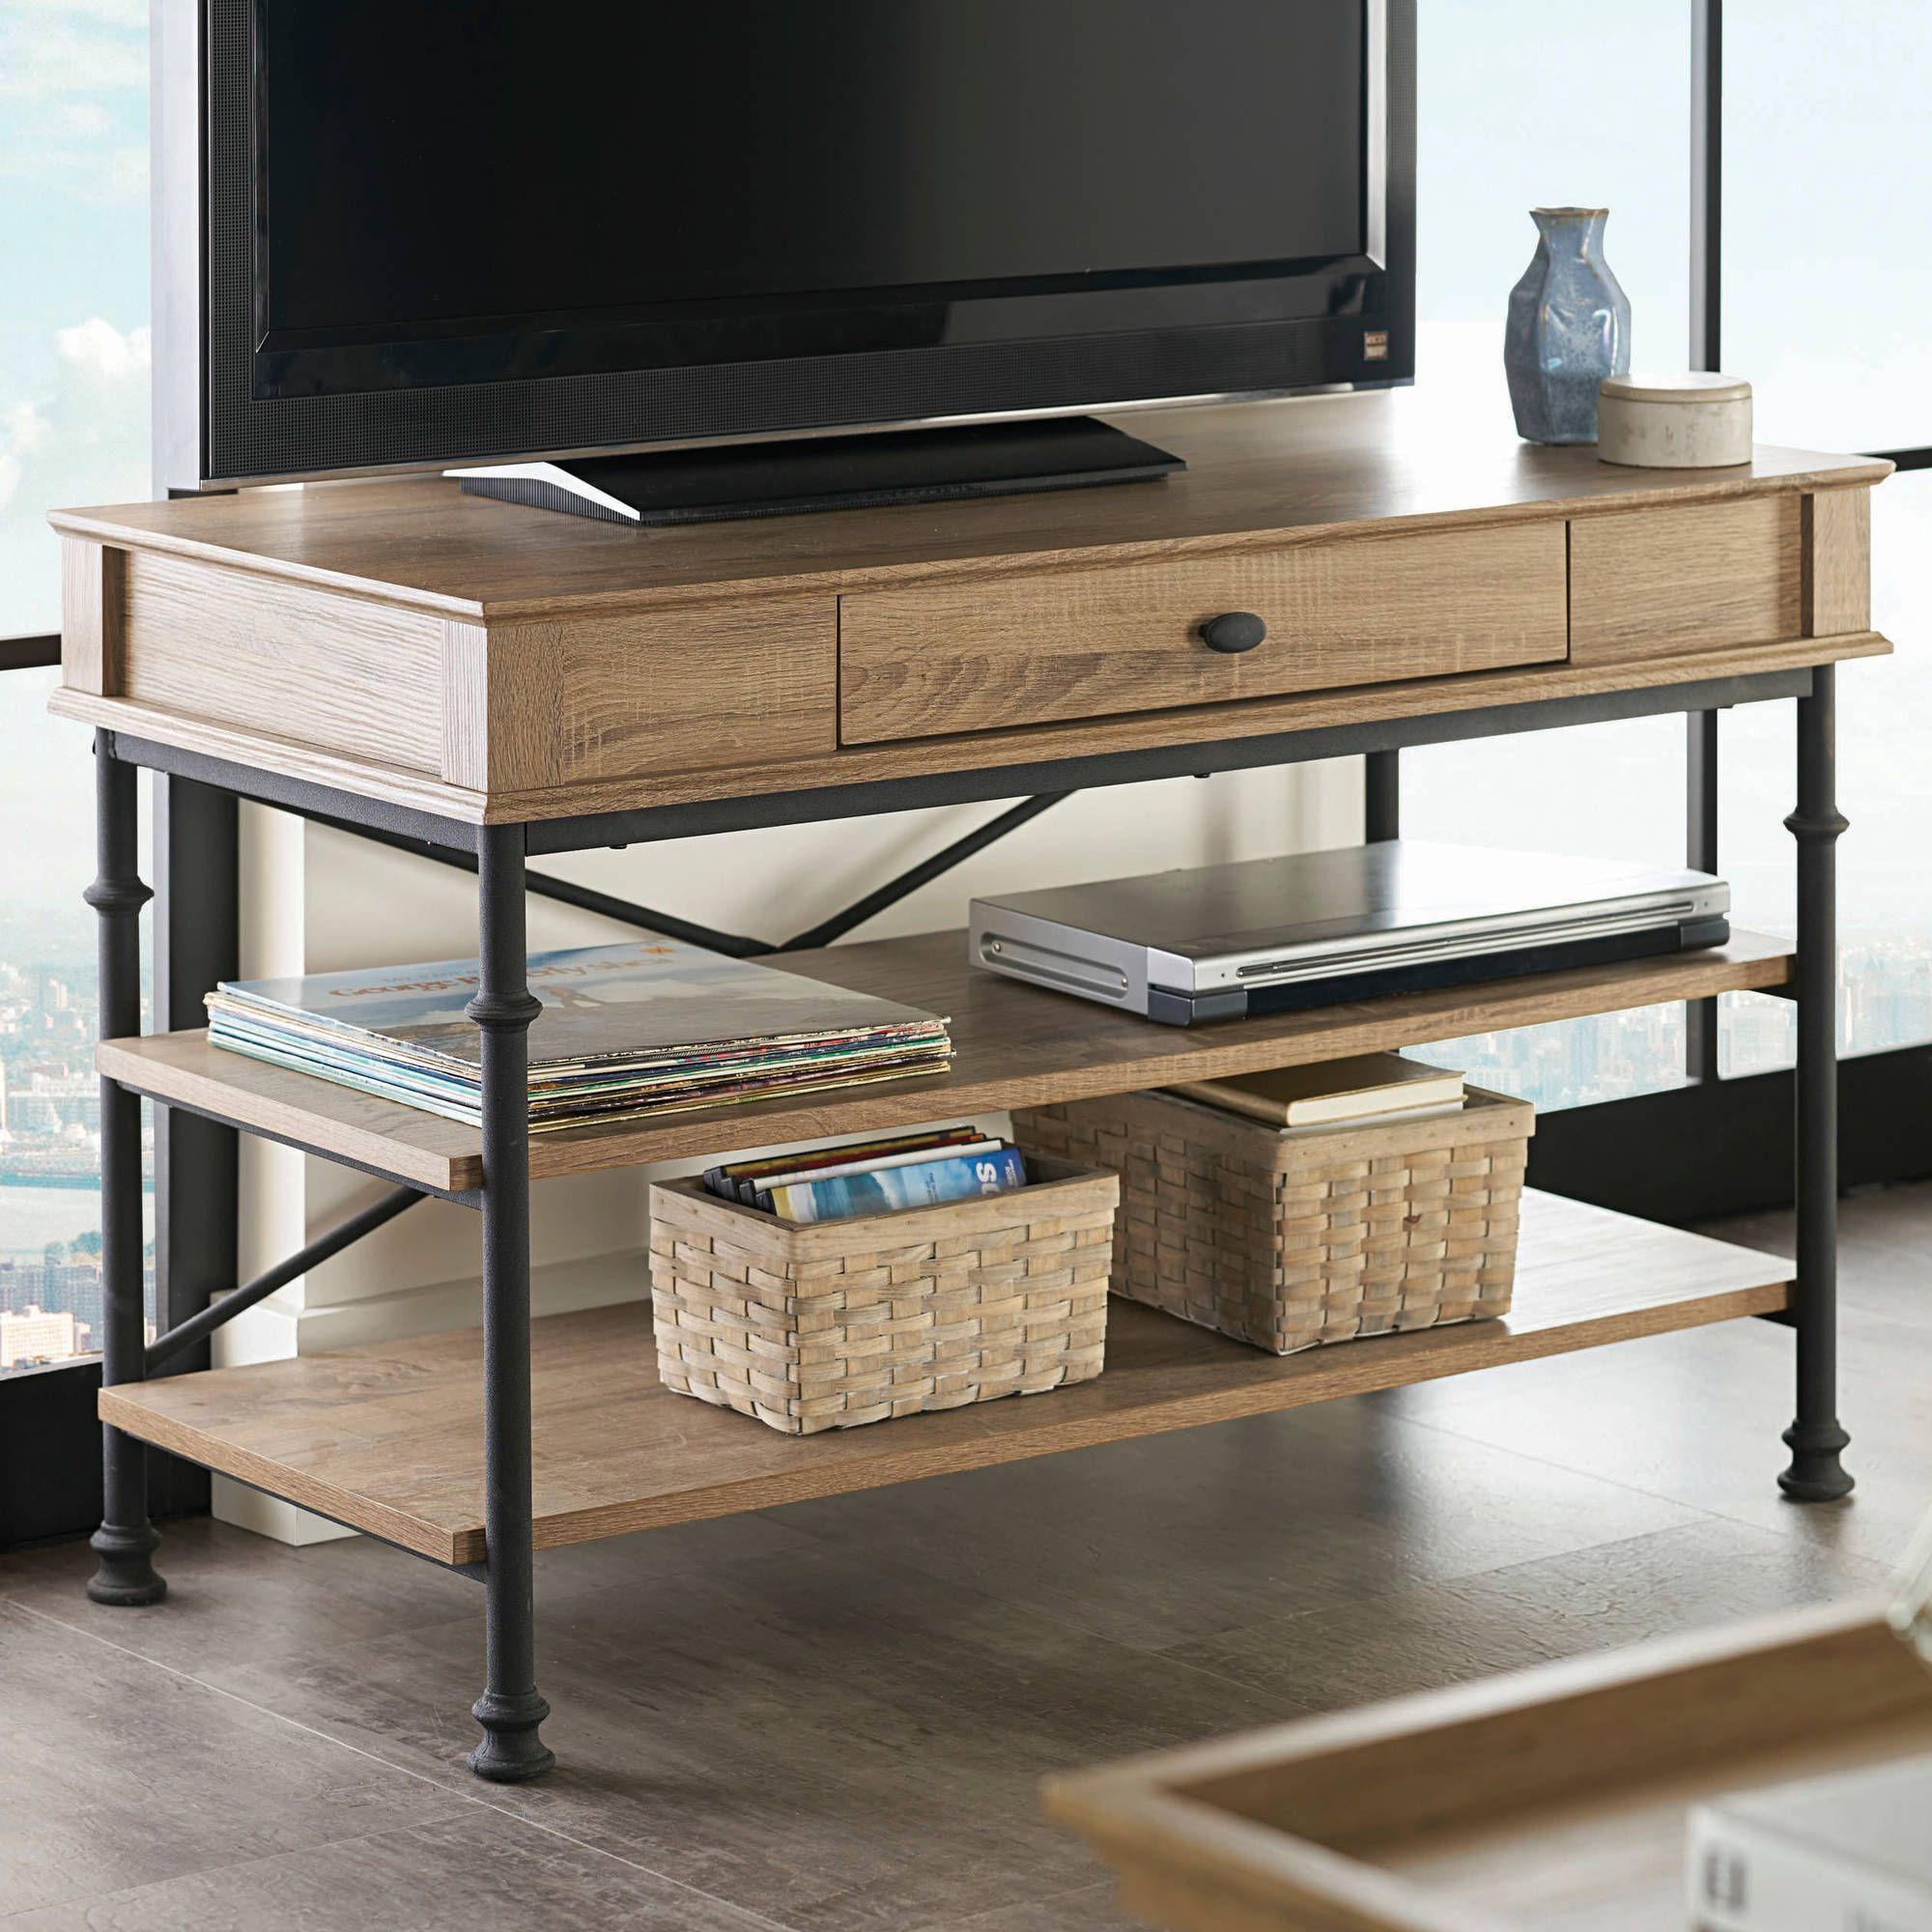 Home with images tv stand home better homes gardens